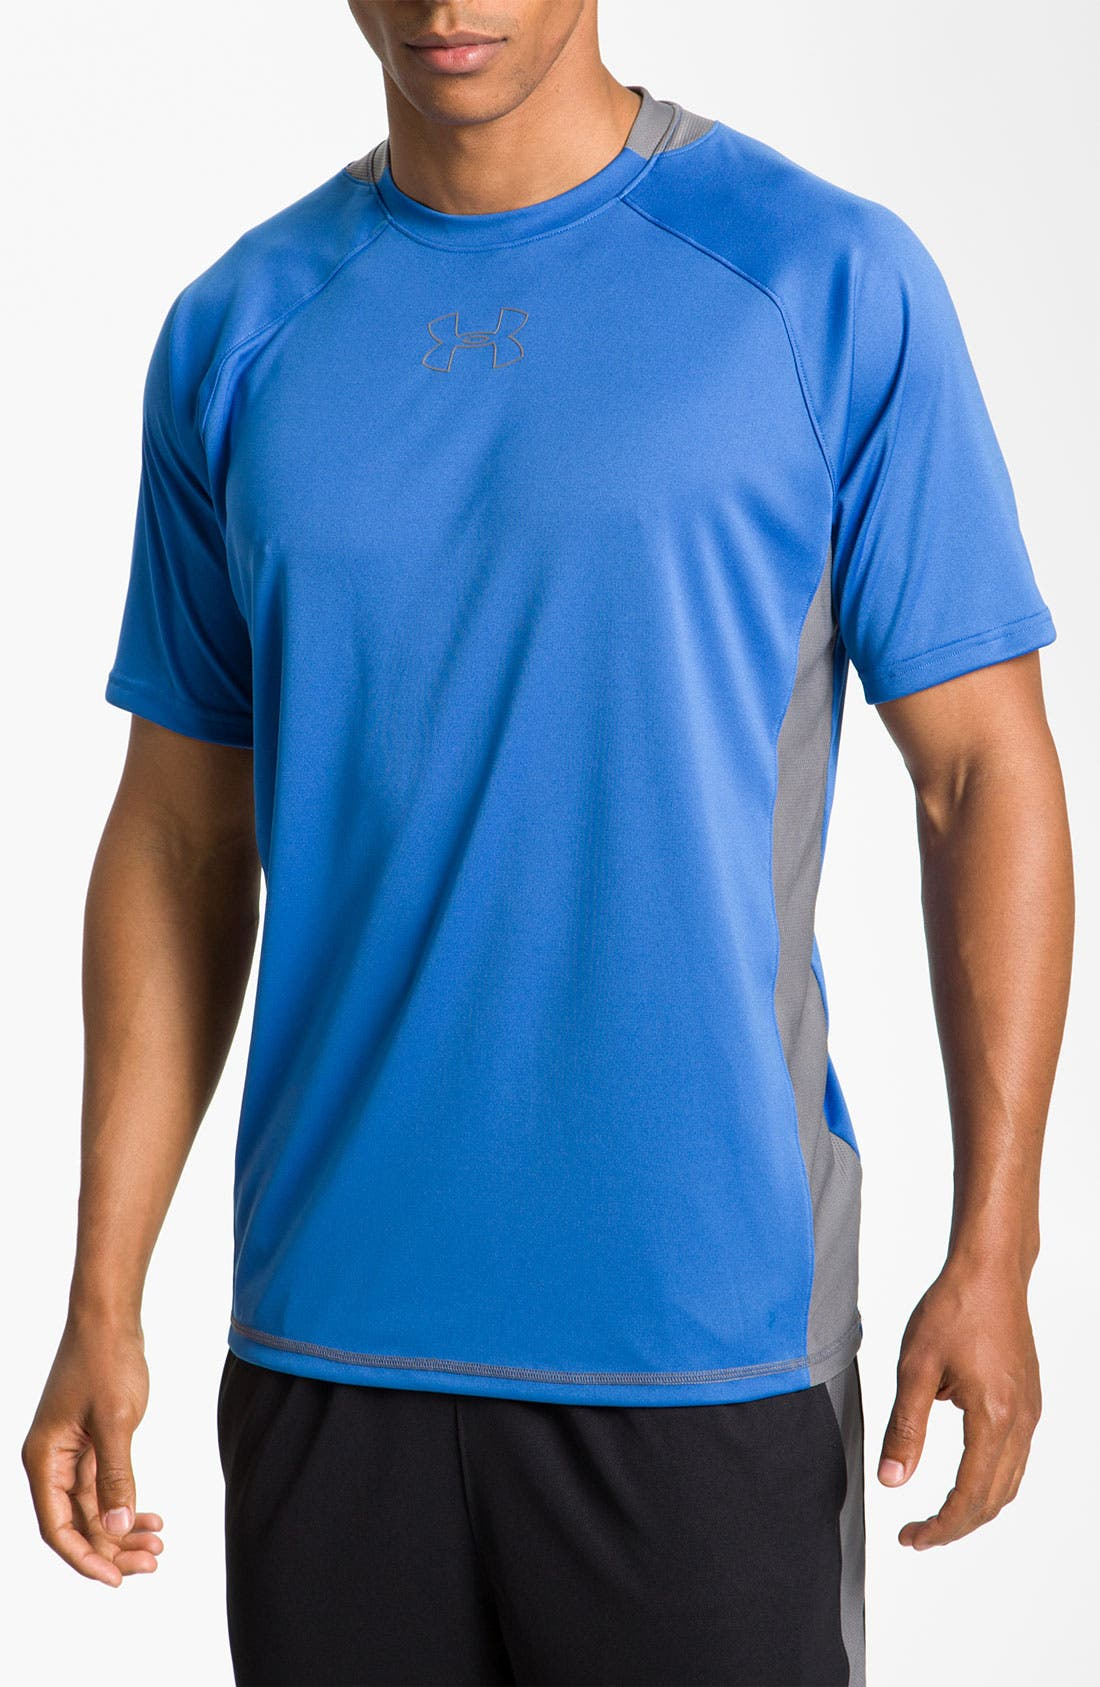 Alternate Image 1 Selected - Under Armour 'Advent' Regular Fit T-Shirt